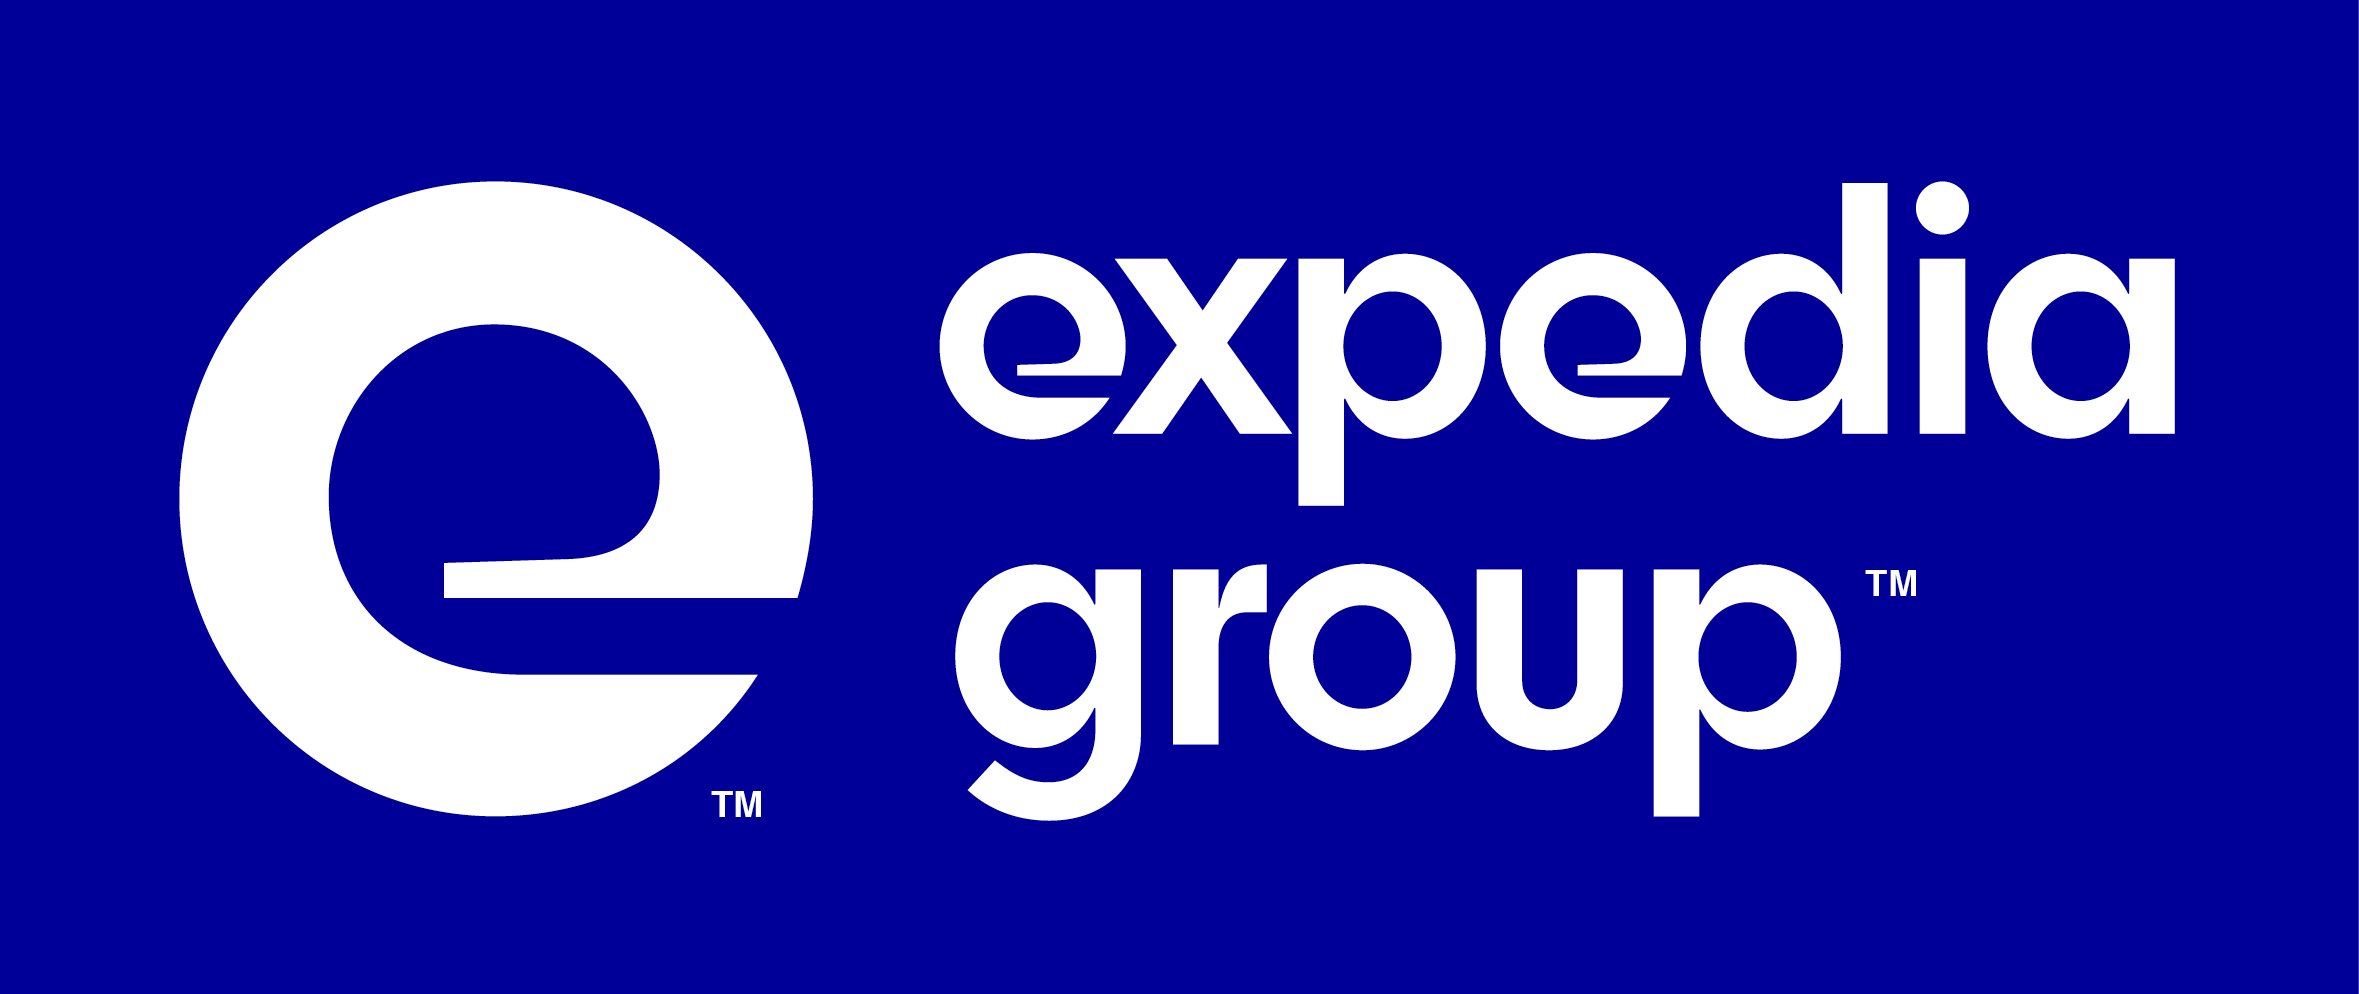 Expedia Group UK logo